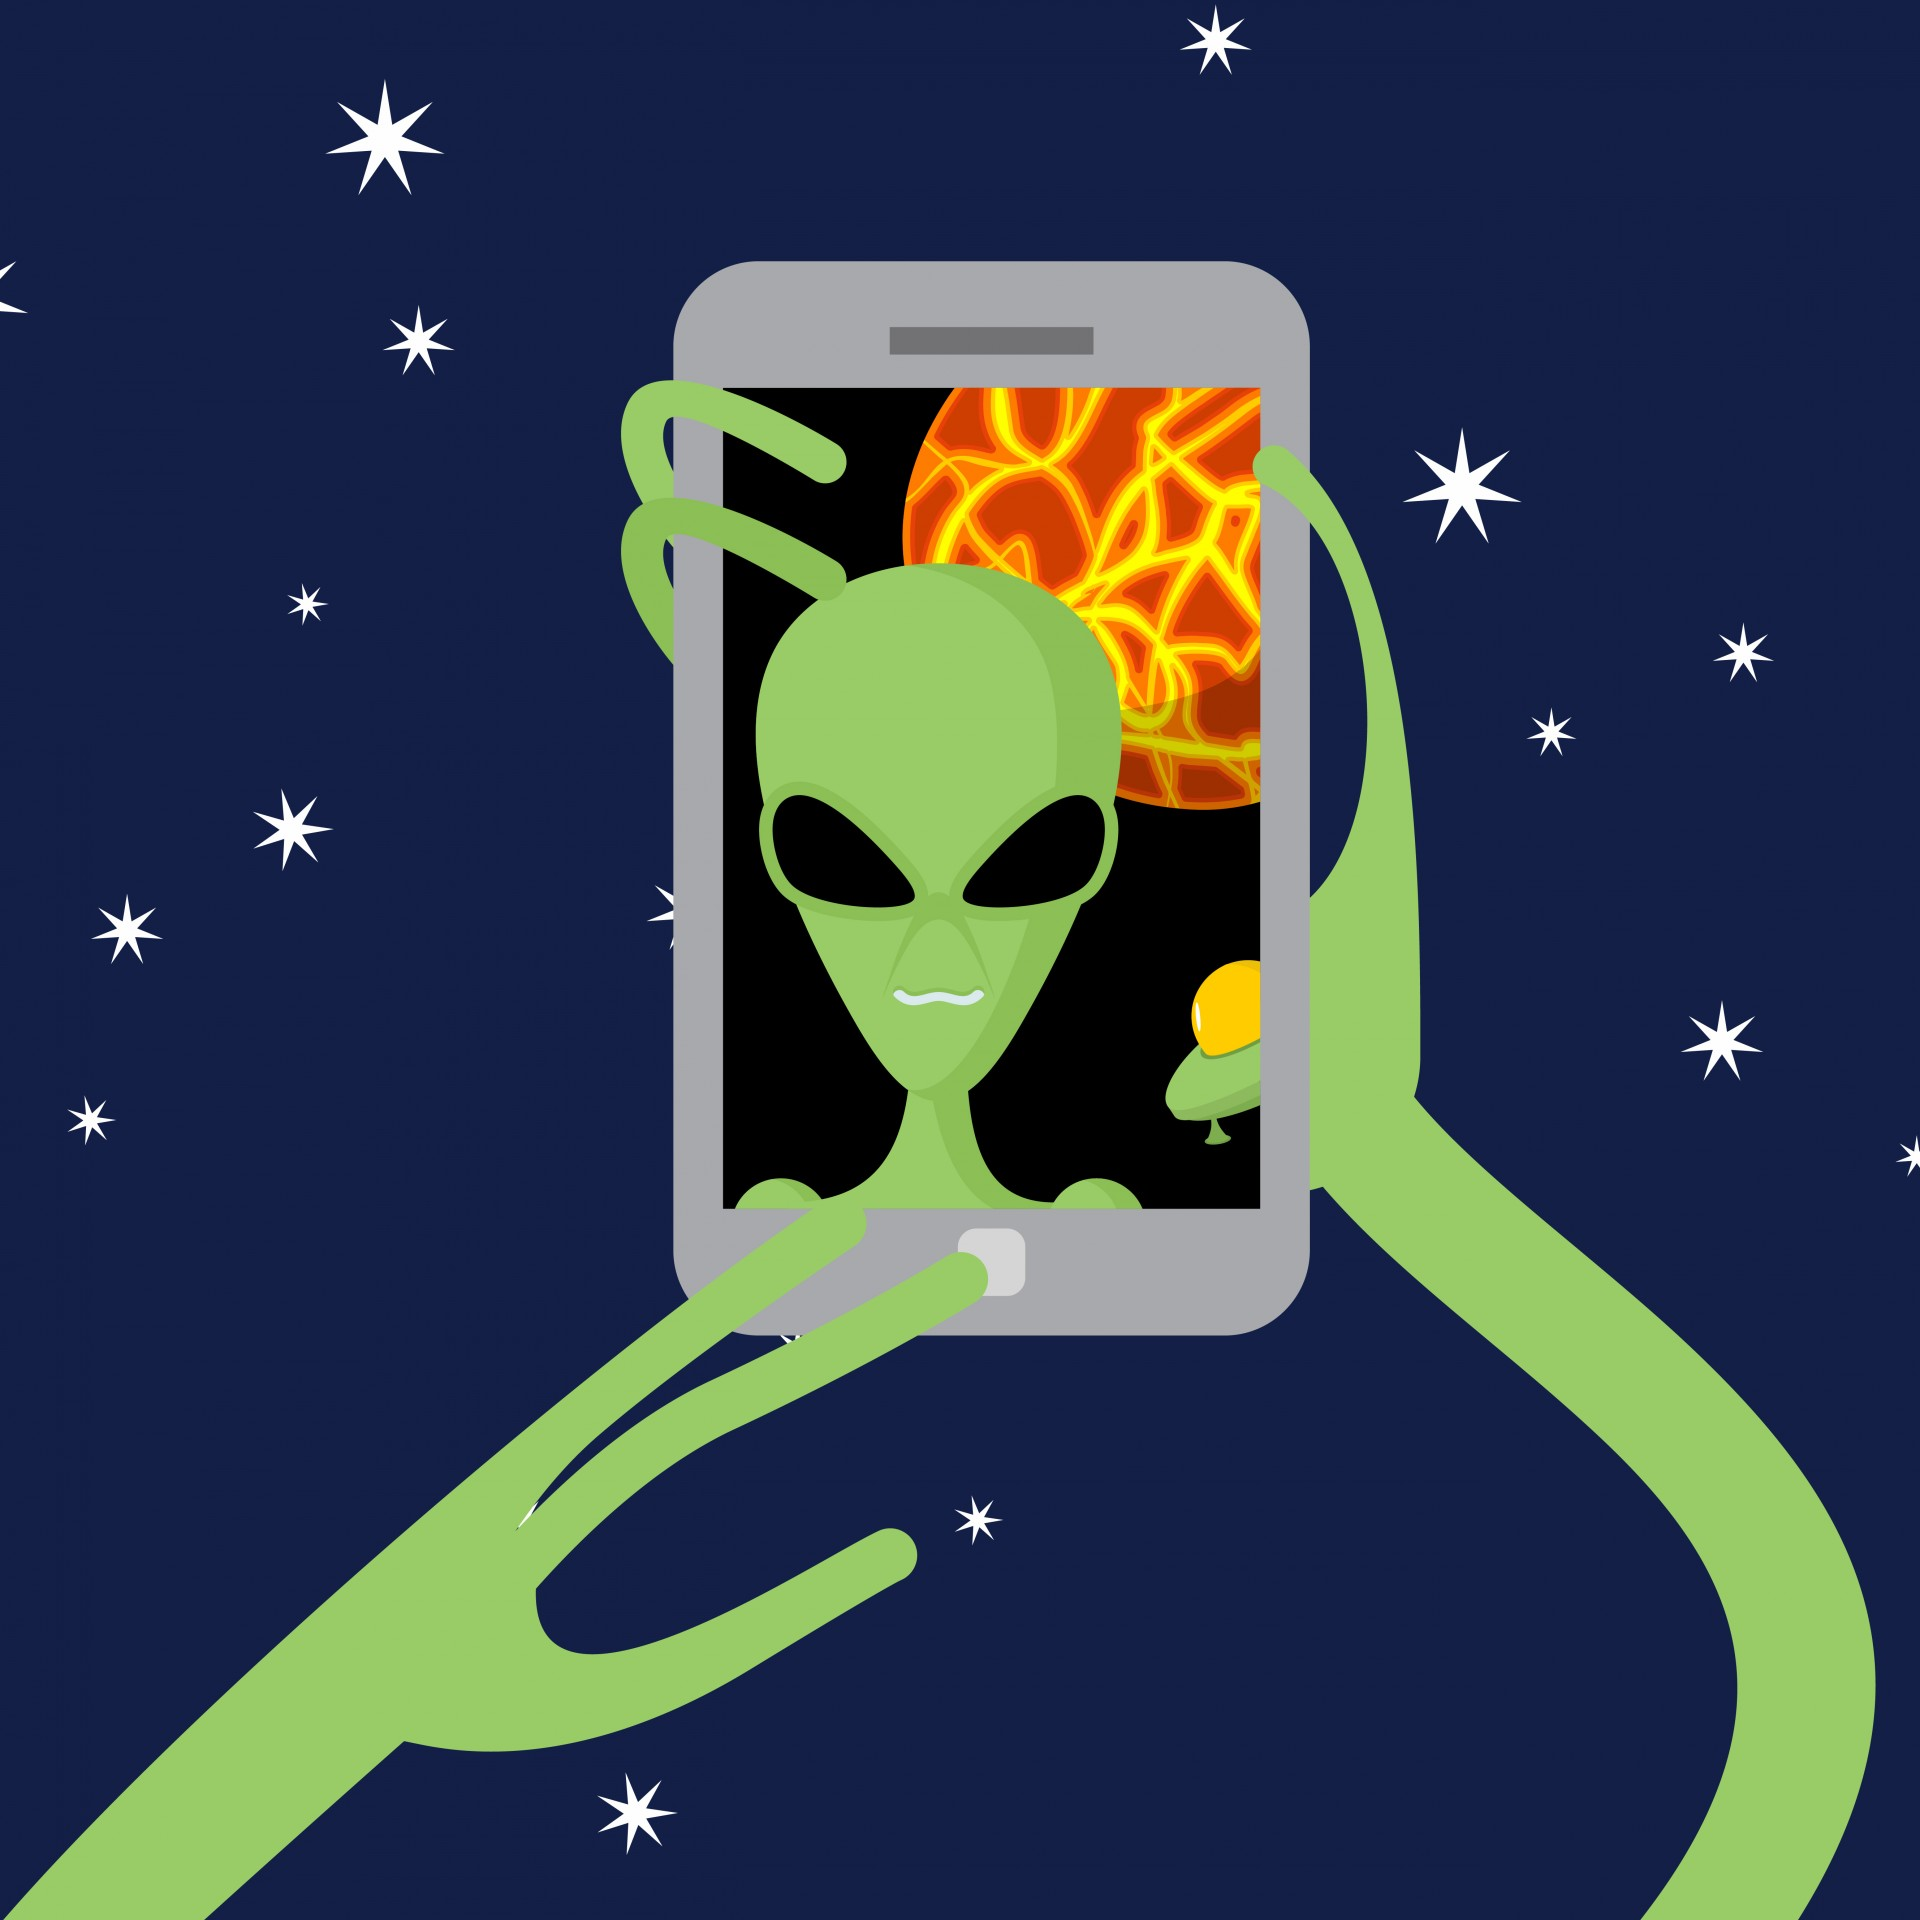 Satireday: Our interview with an intergalactic alien